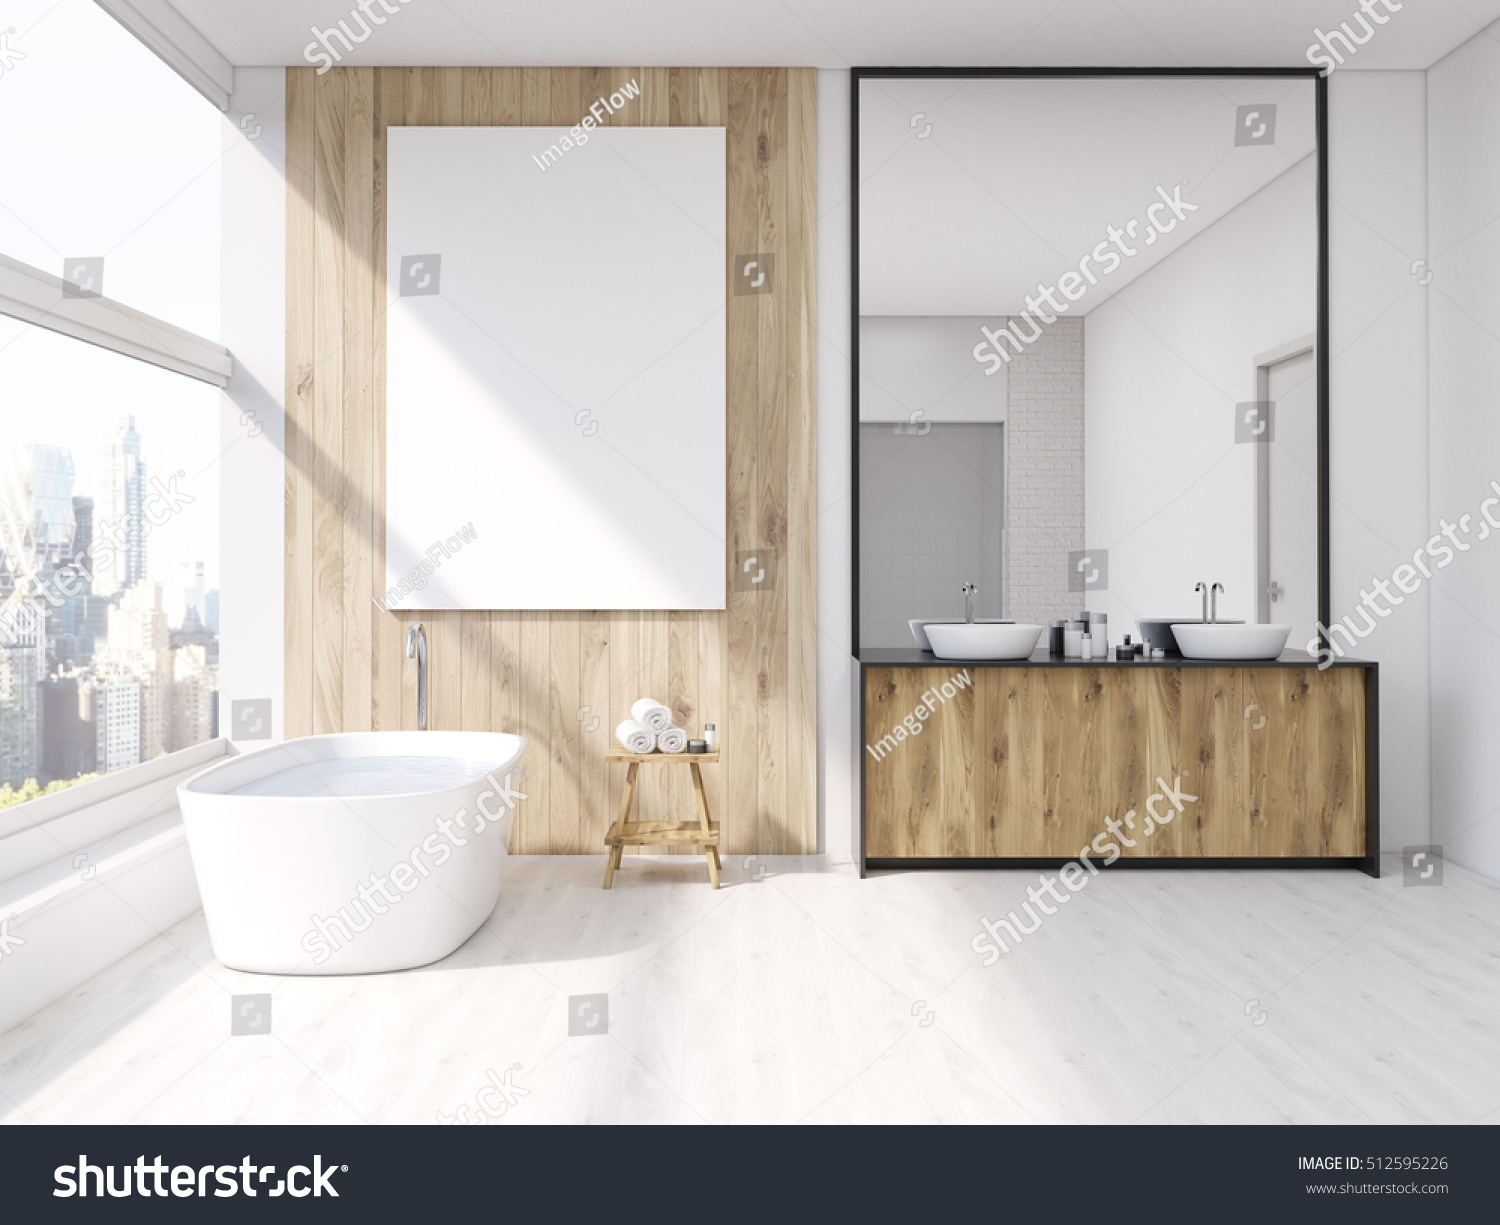 iterior of bathroom with mirror bath tub table with towels and sink